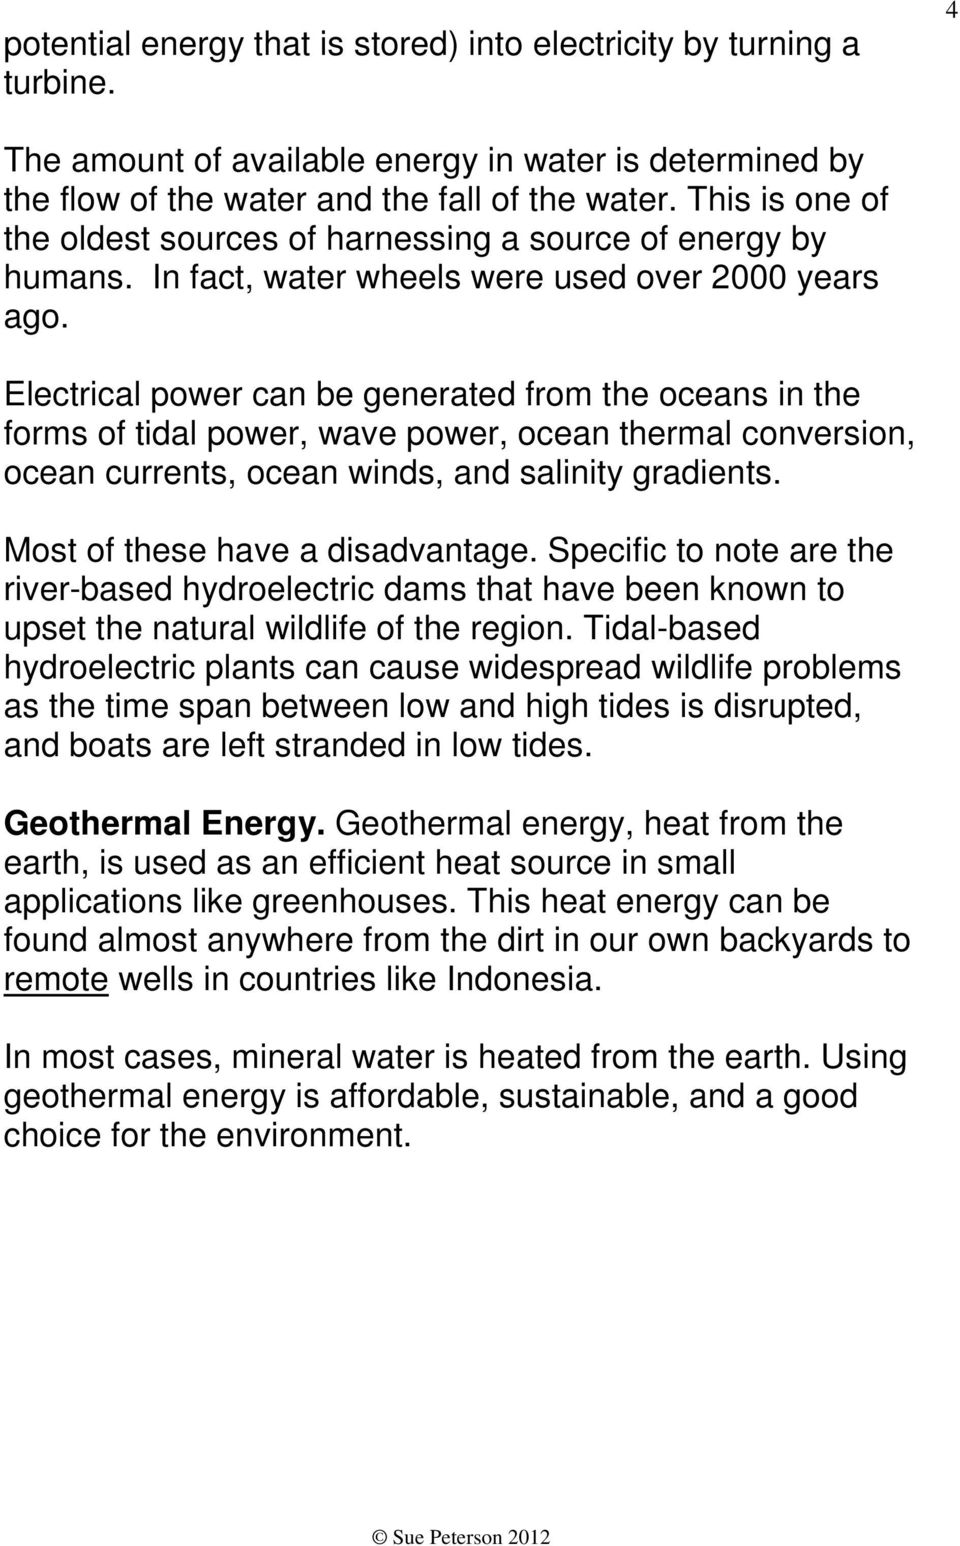 Electrical power can be generated from the oceans in the forms of tidal power, wave power, ocean thermal conversion, ocean currents, ocean winds, and salinity gradients.